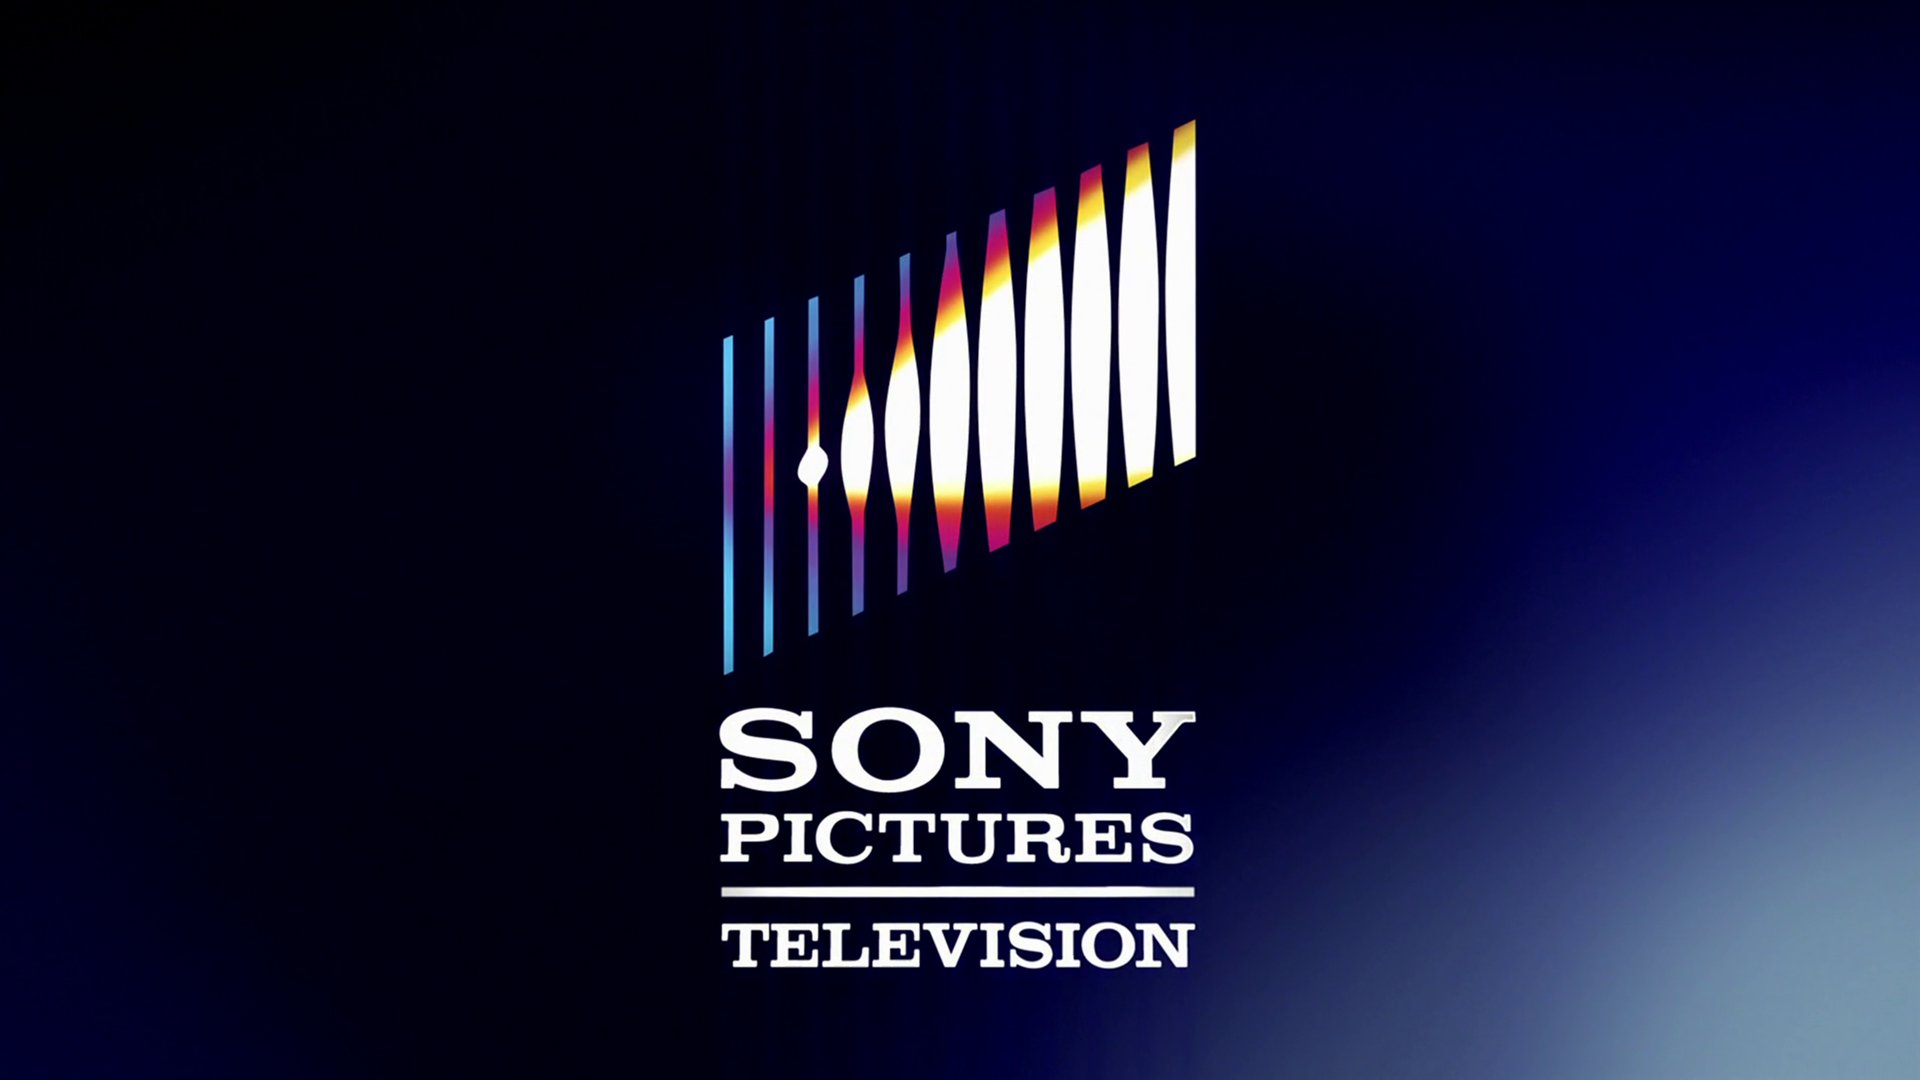 Sony Pictures Television.jpg